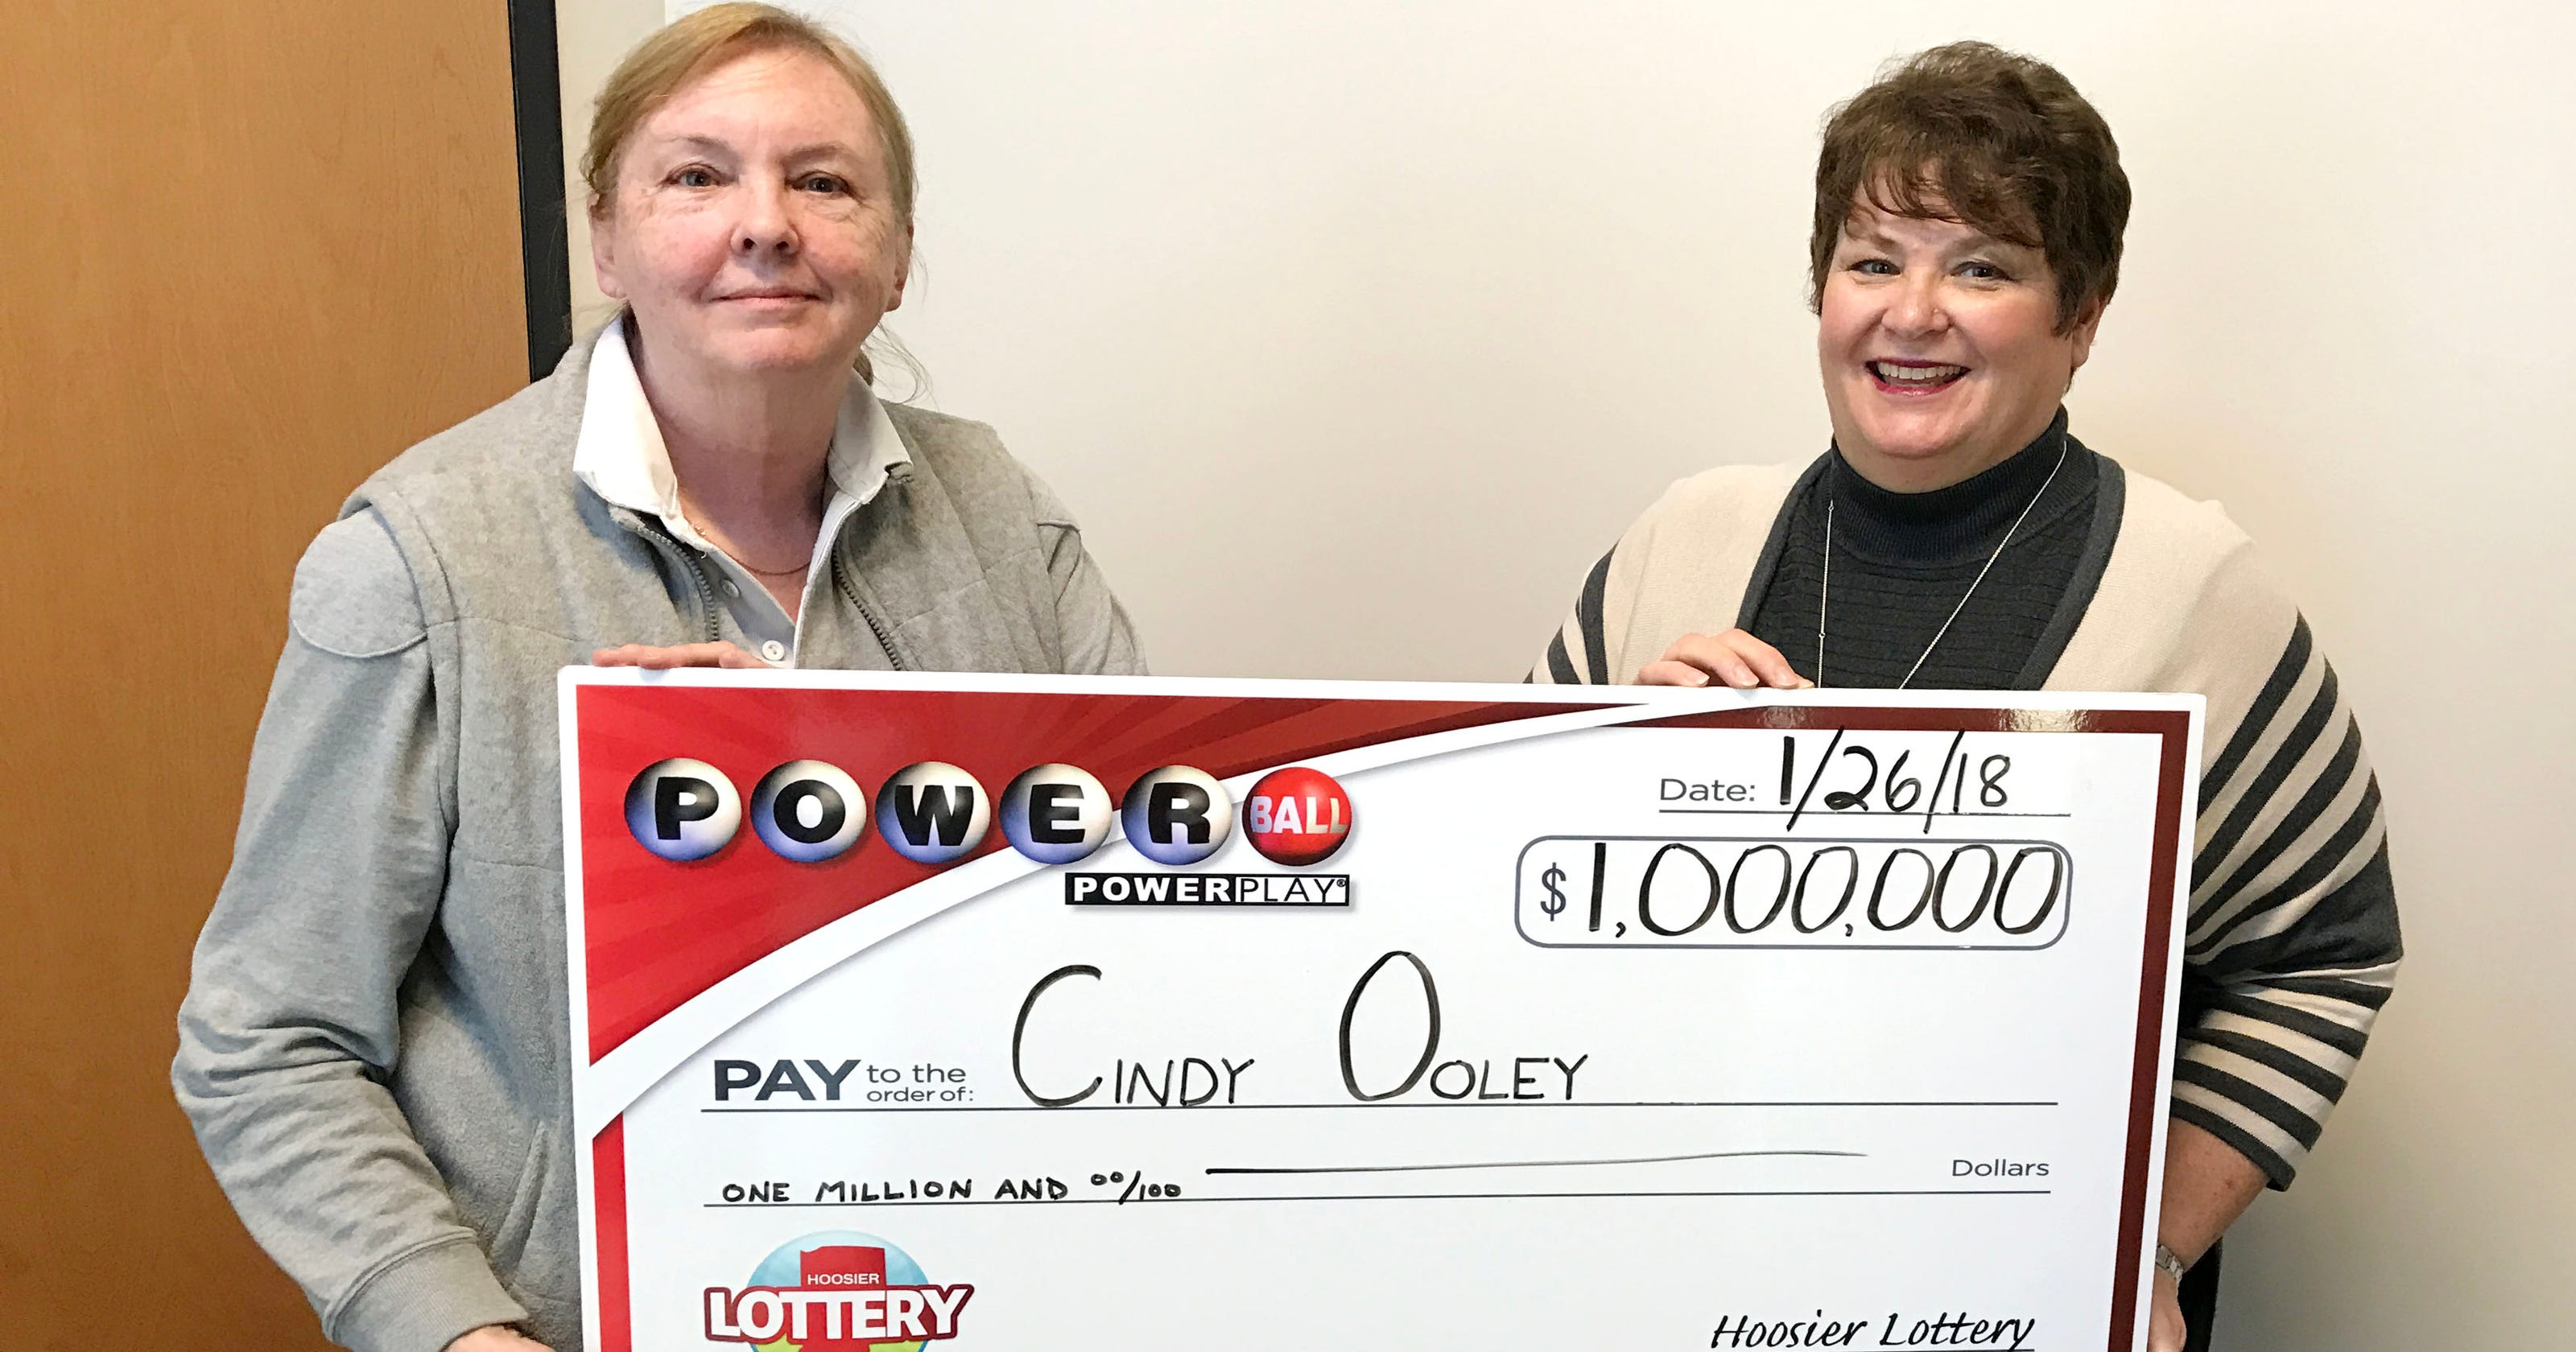 Powerball payout stuns Indiana couple at Hoosier Lottery office